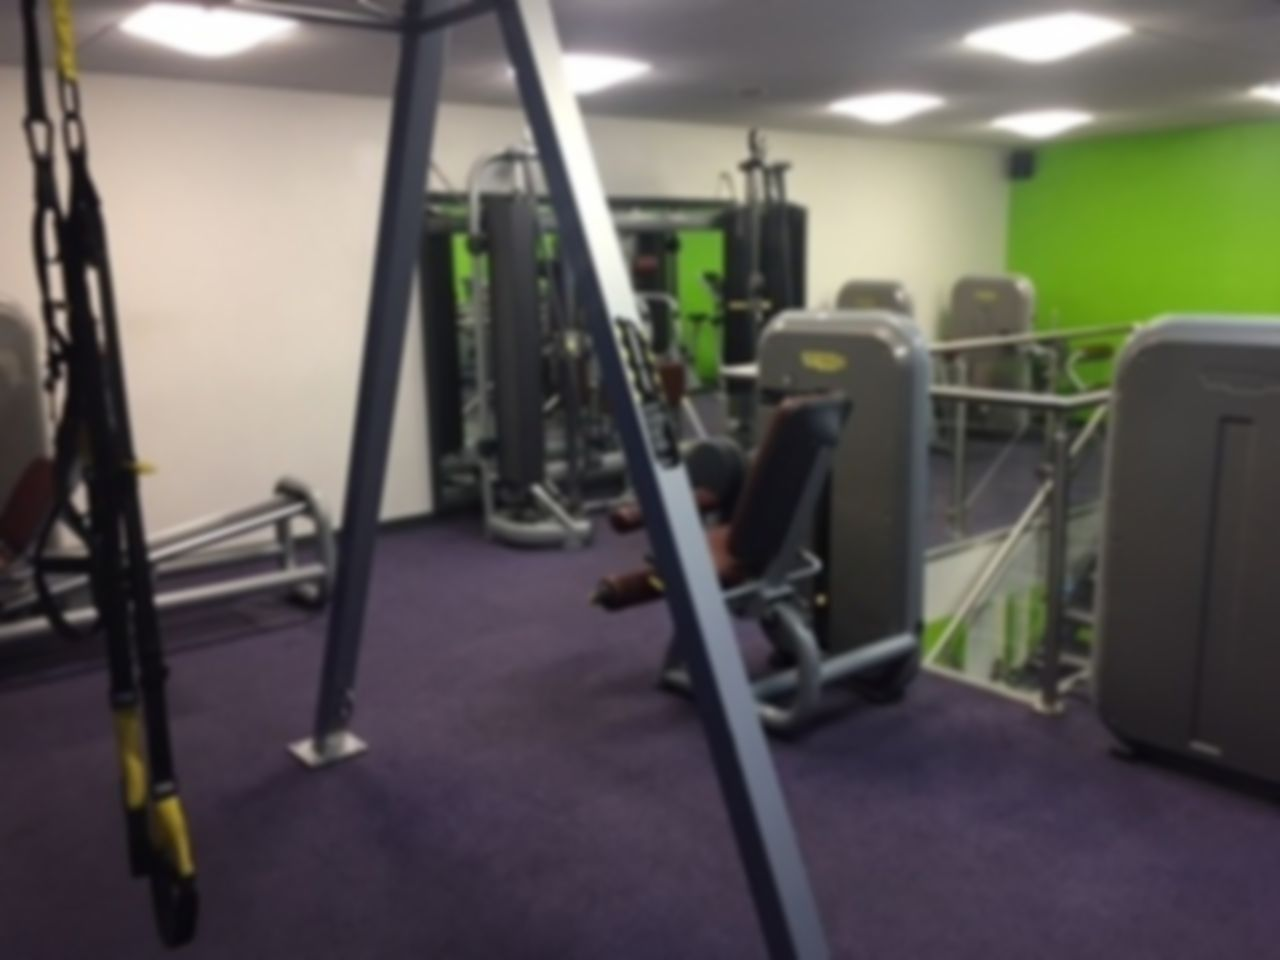 Kingfisher leisure centre flexible gym passes kt1 kingston upon thames for Kingfisher swimming pool prices